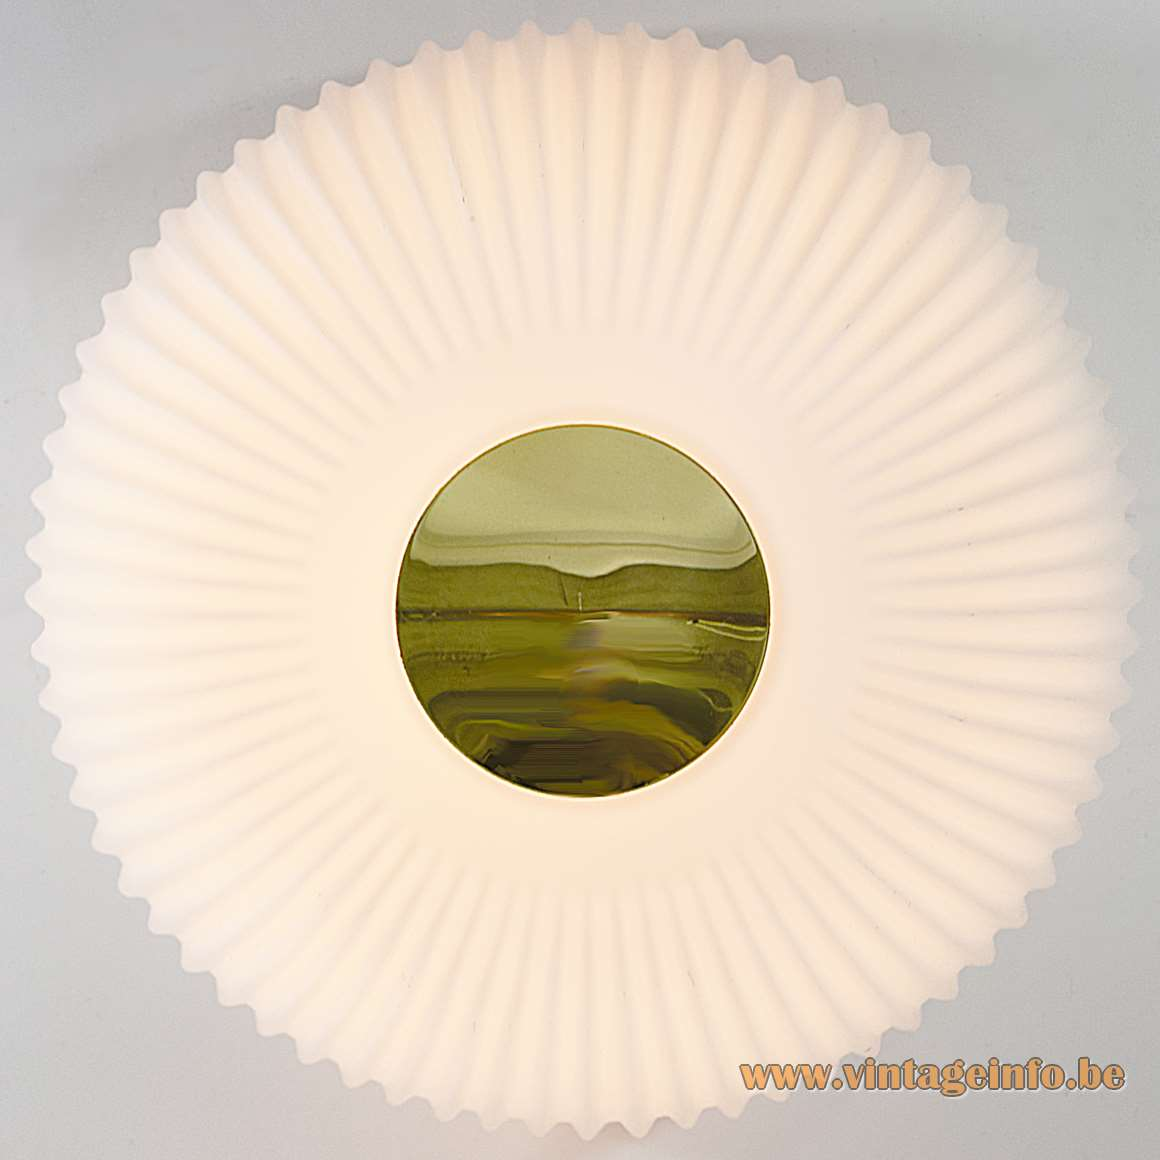 Glashütte Limburg Flush Mount 2773 round white opal crenate glass brass center piece Germany 1970s MCM